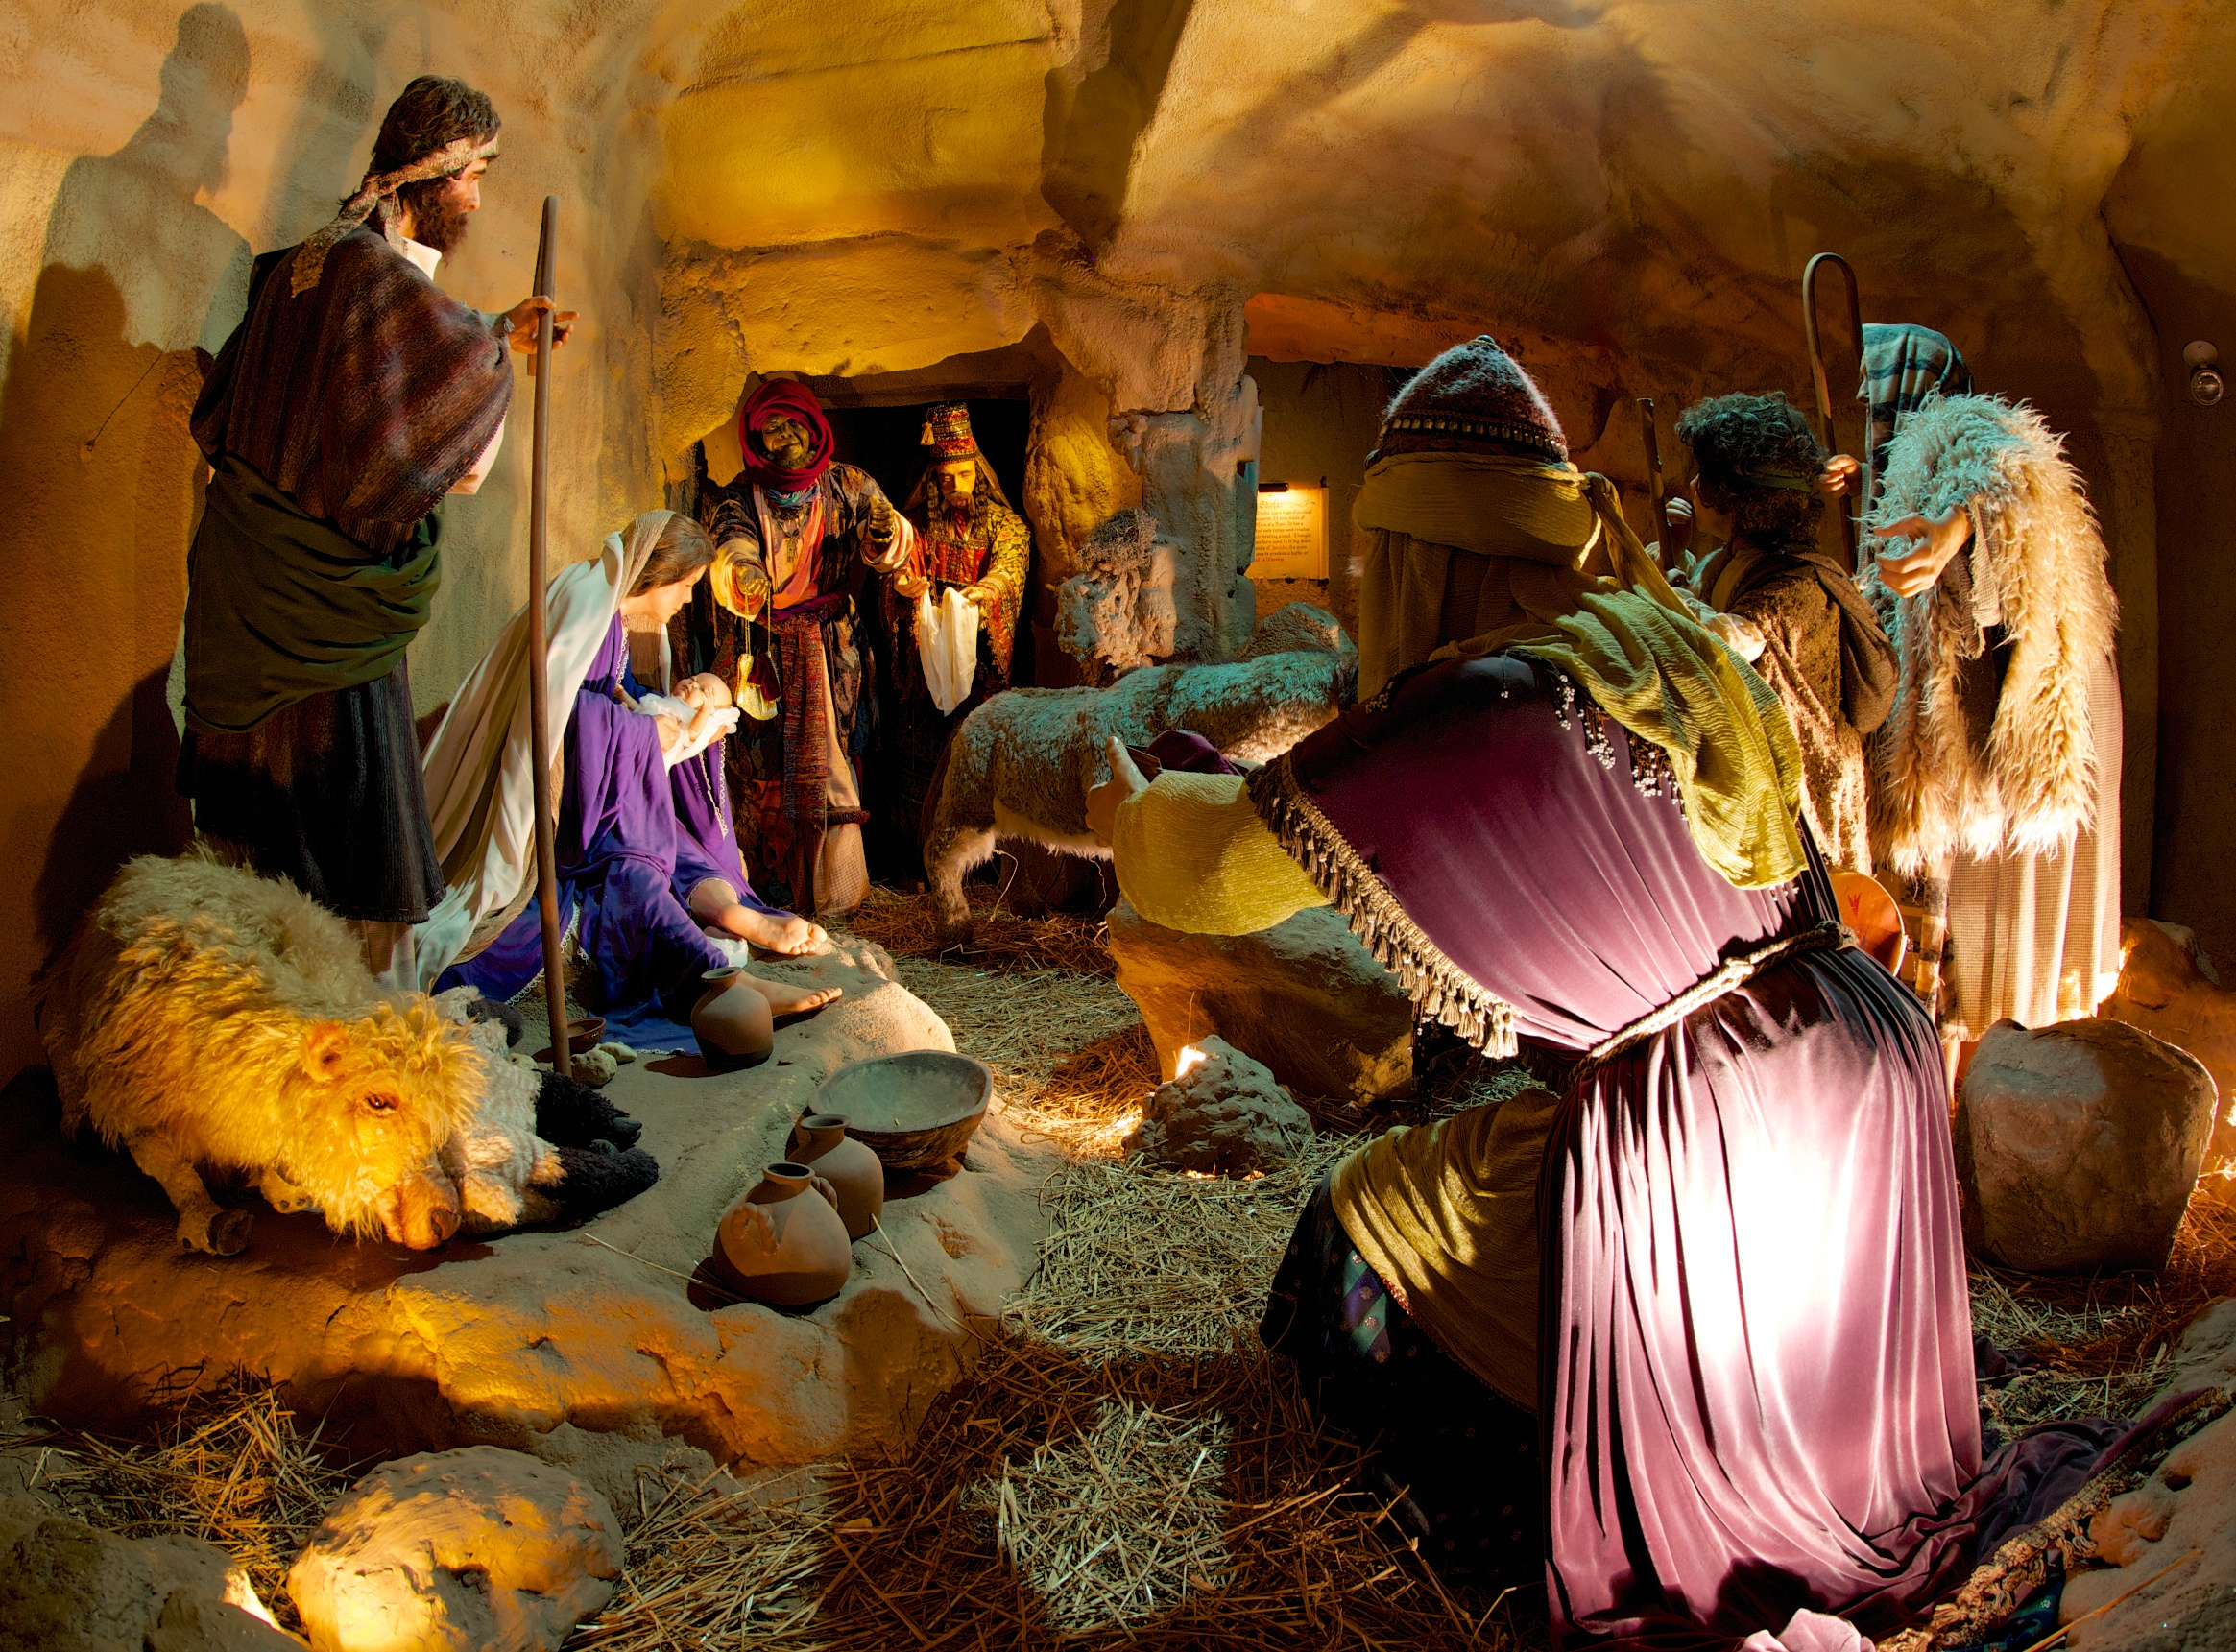 Figure 12: The First Christmas , the last exhibit experienced by visitors to the National Christmas Center, is a walk-through recreation of the sights and sounds of the Holy Land at the time of the birth of Christ.